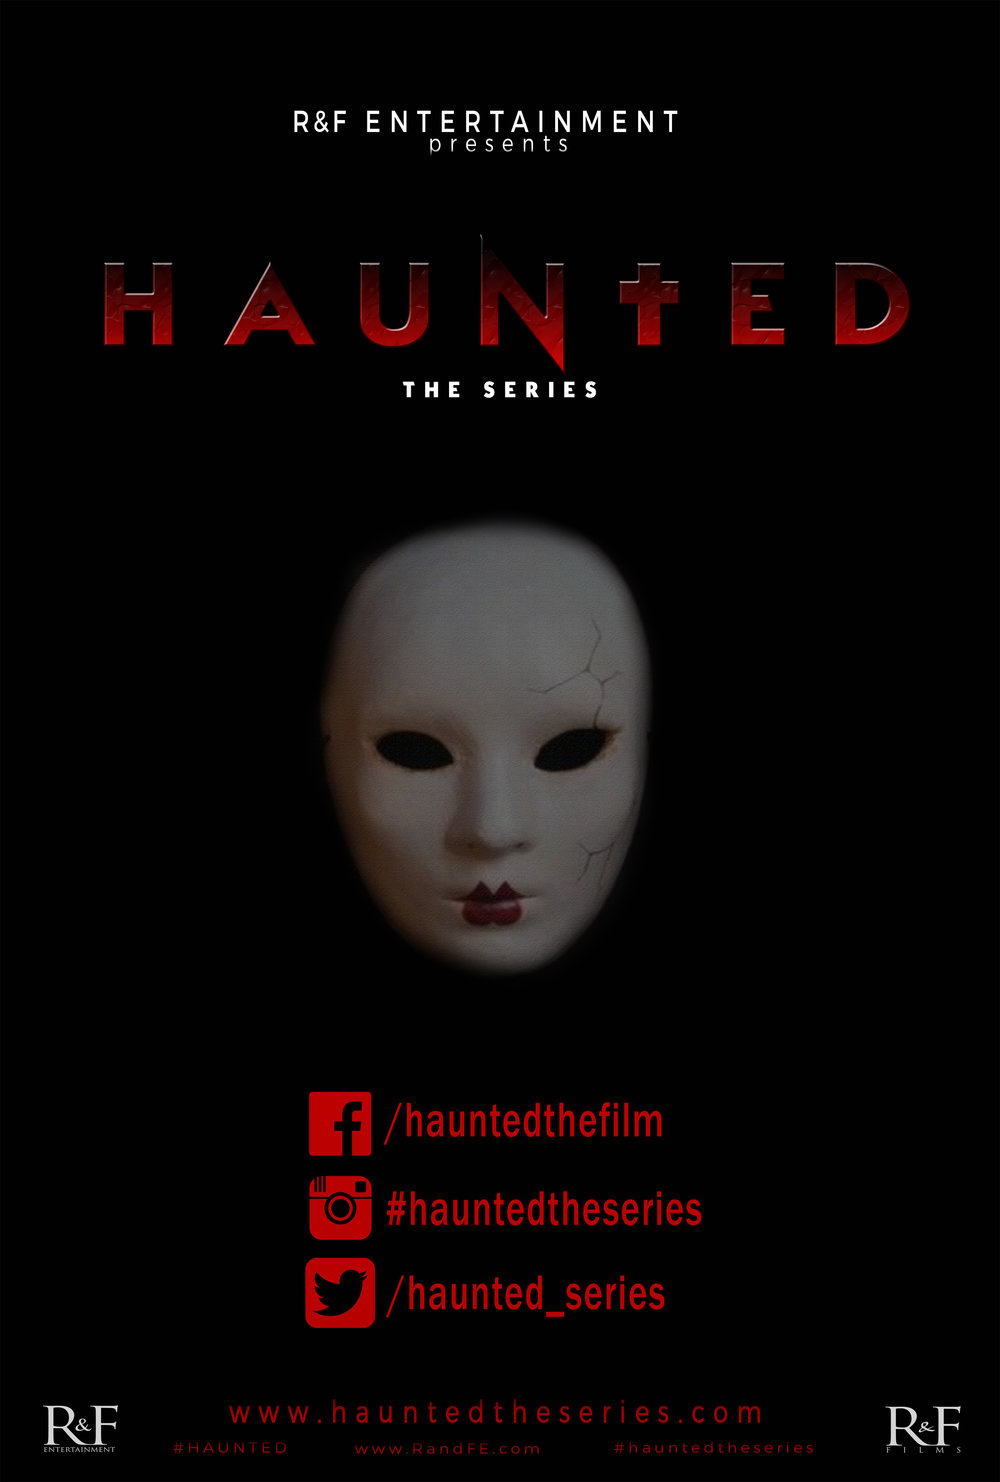 HAUNTED THE SERIES teaser poster